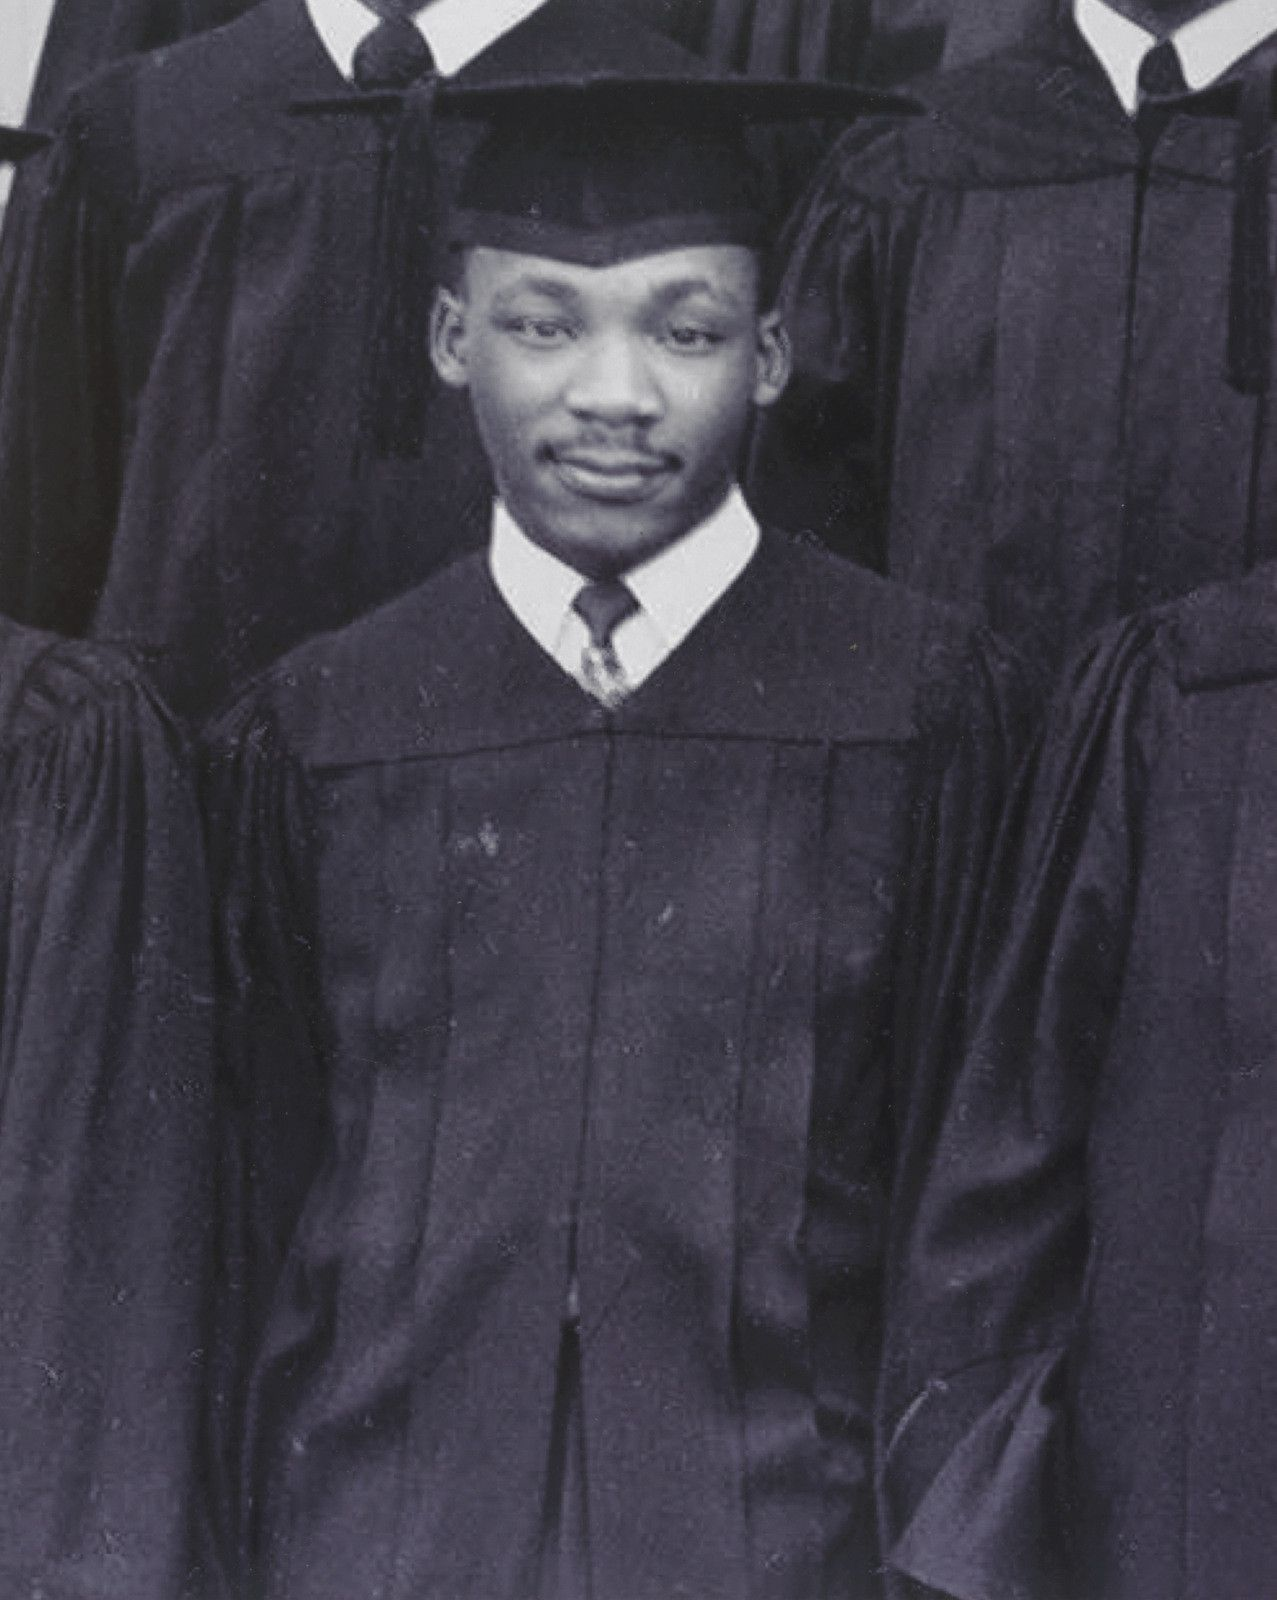 Martin Luther King Jr. - Minister, Civil Rights Activist - Biography Martin luther king graduation photo